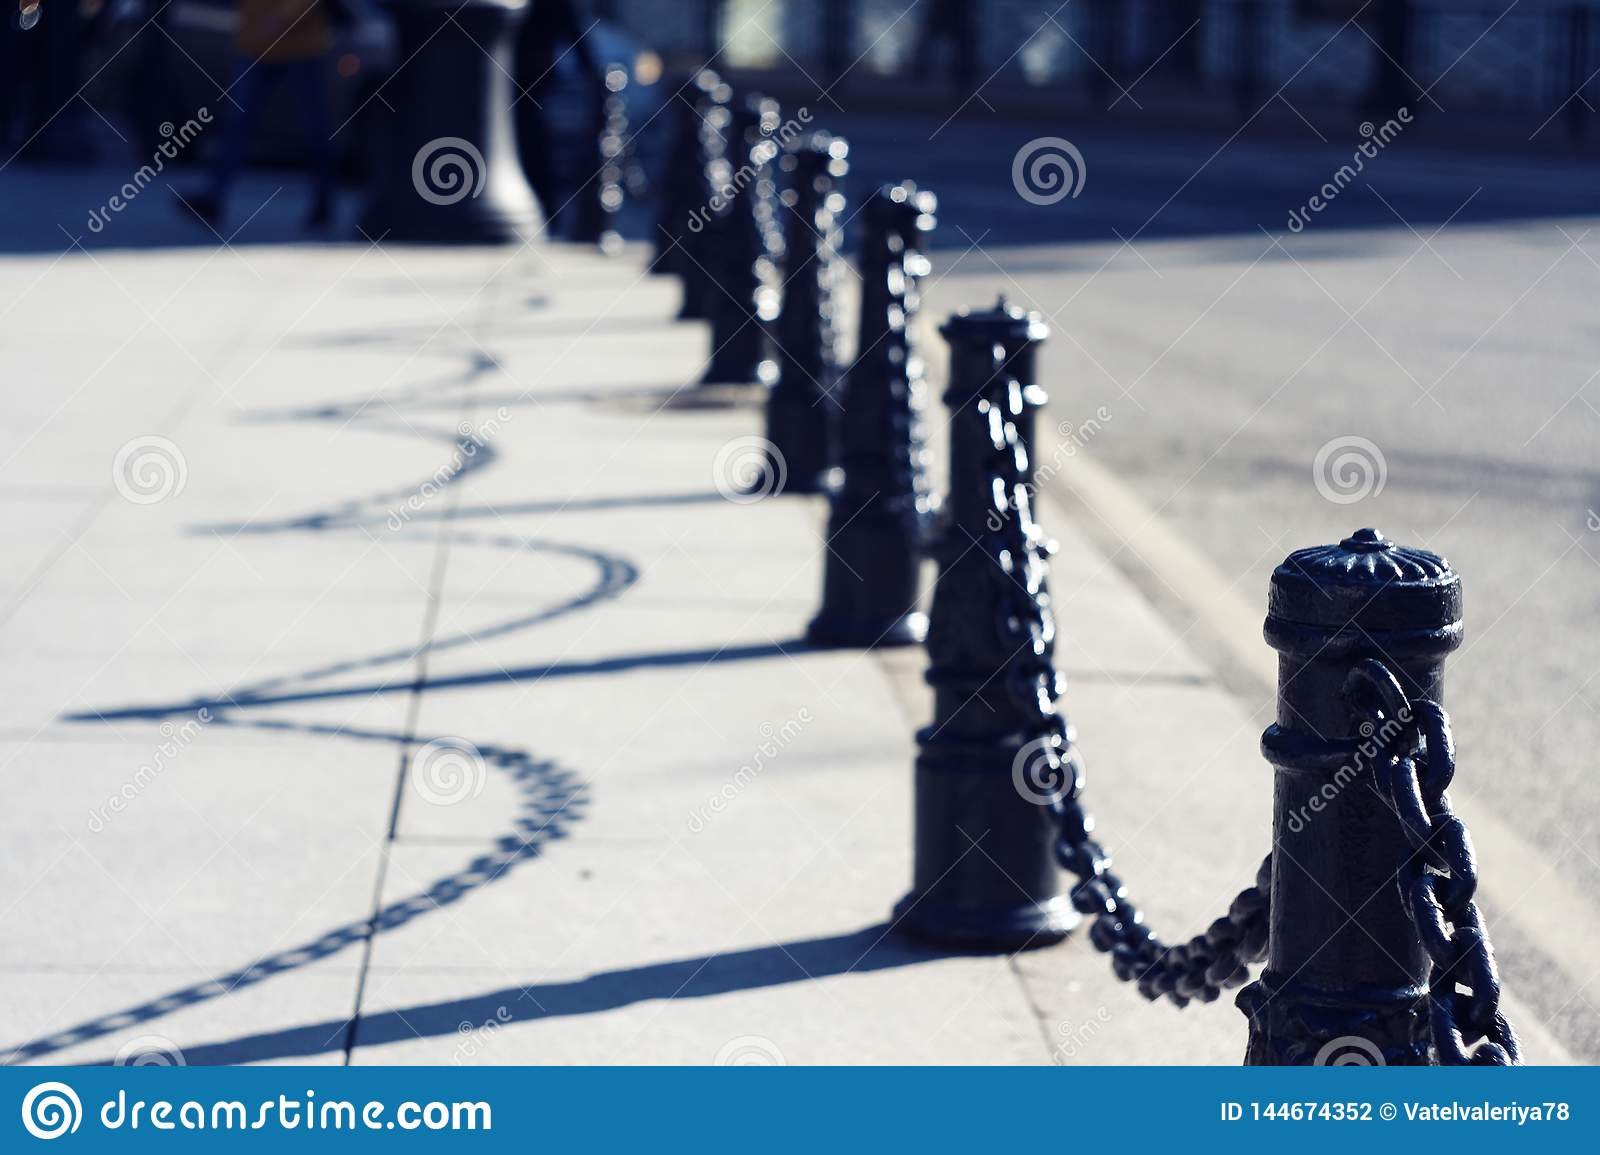 Beautiful graceful black decorative fence with chains